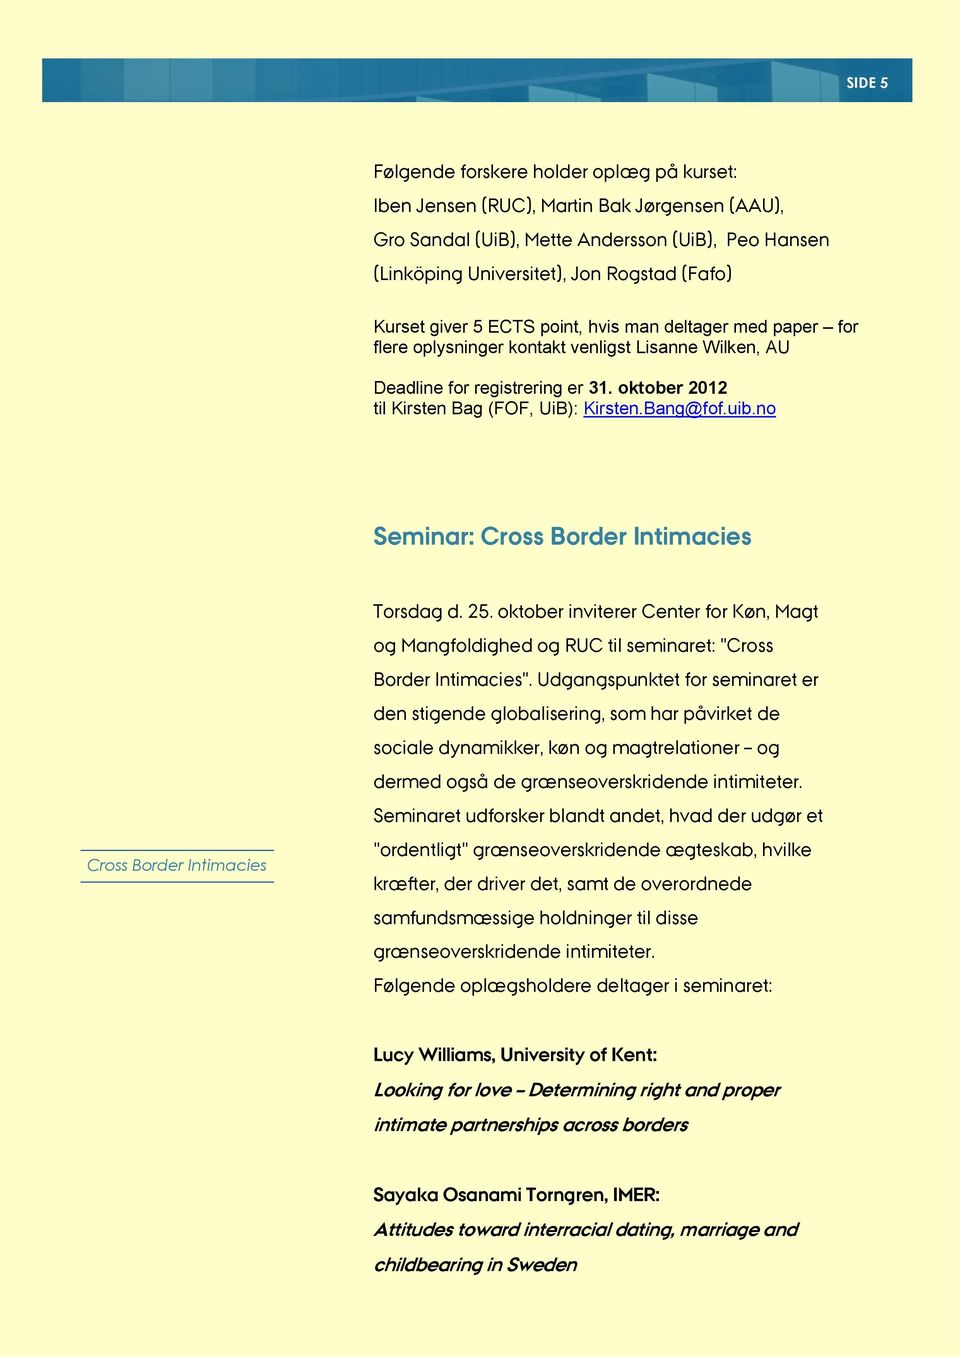 uib.no Seminar: Cross Border Intimacies For mere information om kurset, kontakt Kari Hoftun Johnsen: kari.johnsen@fof.uib.no Cross Border Intimacies Torsdag d. 25.